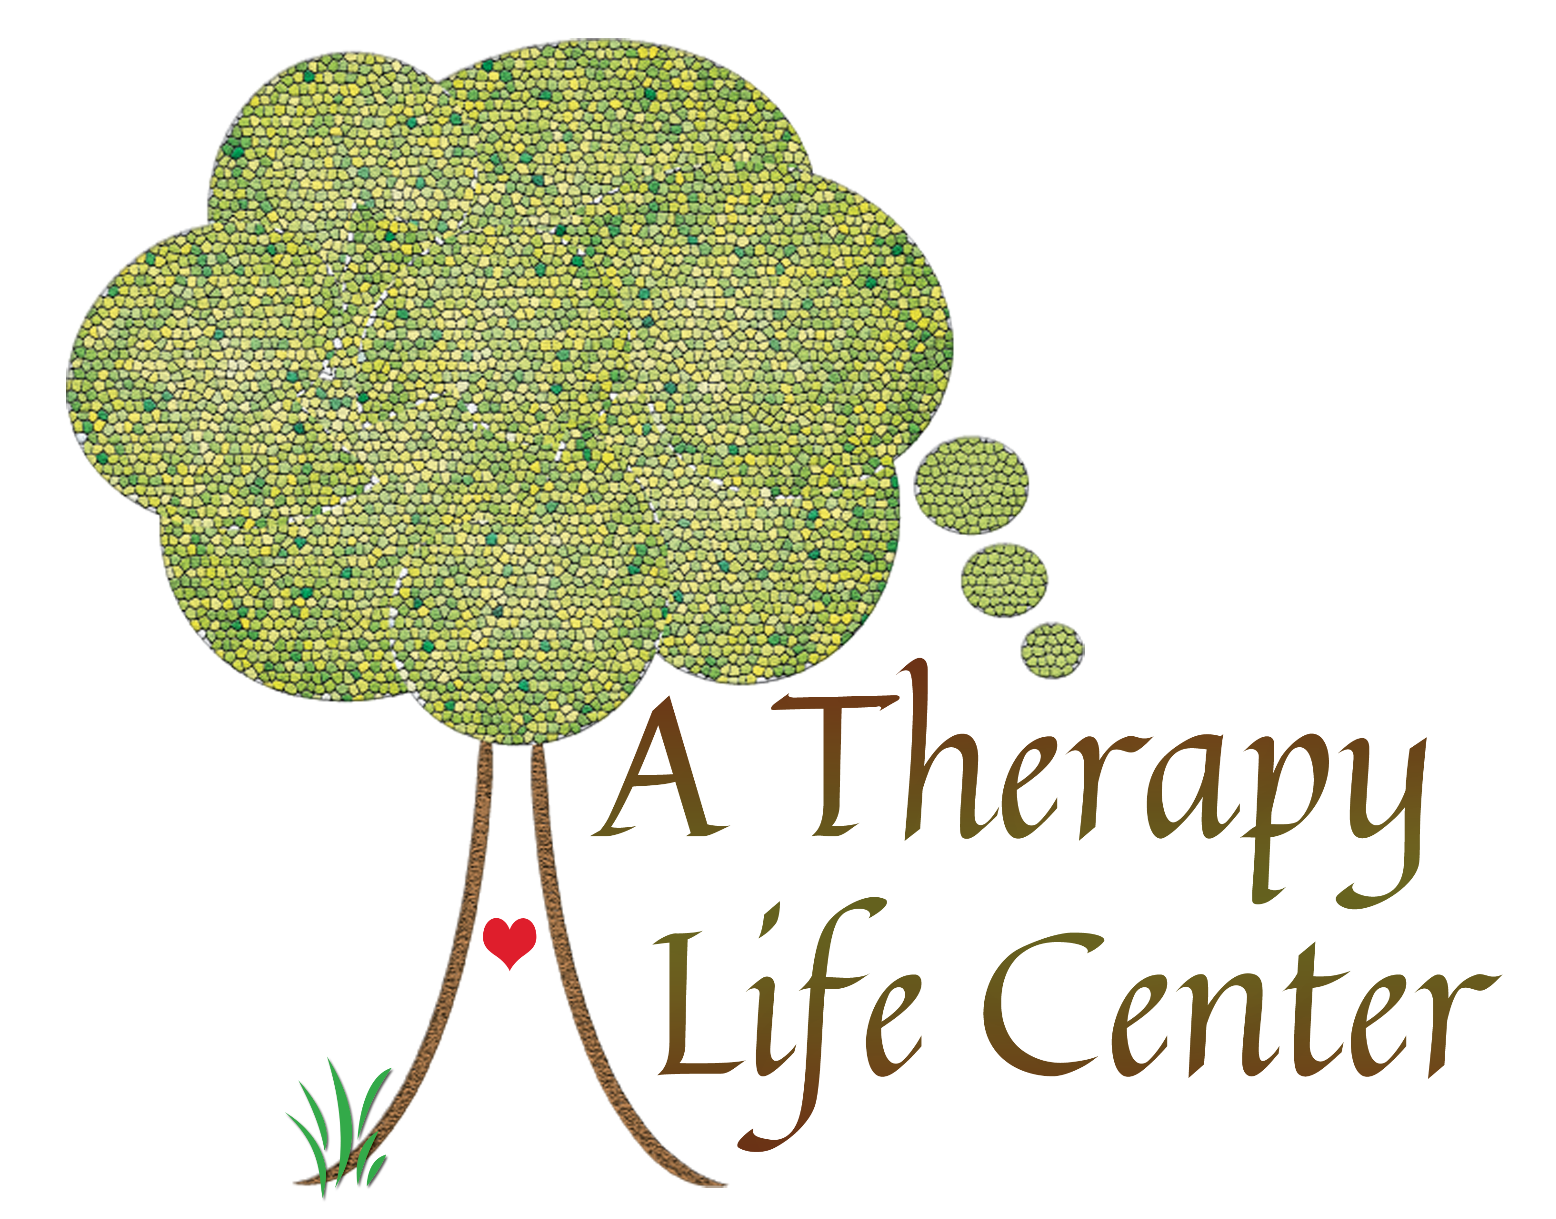 Contact A Therapy Life Center | Psychotherapist Garfield, NJ